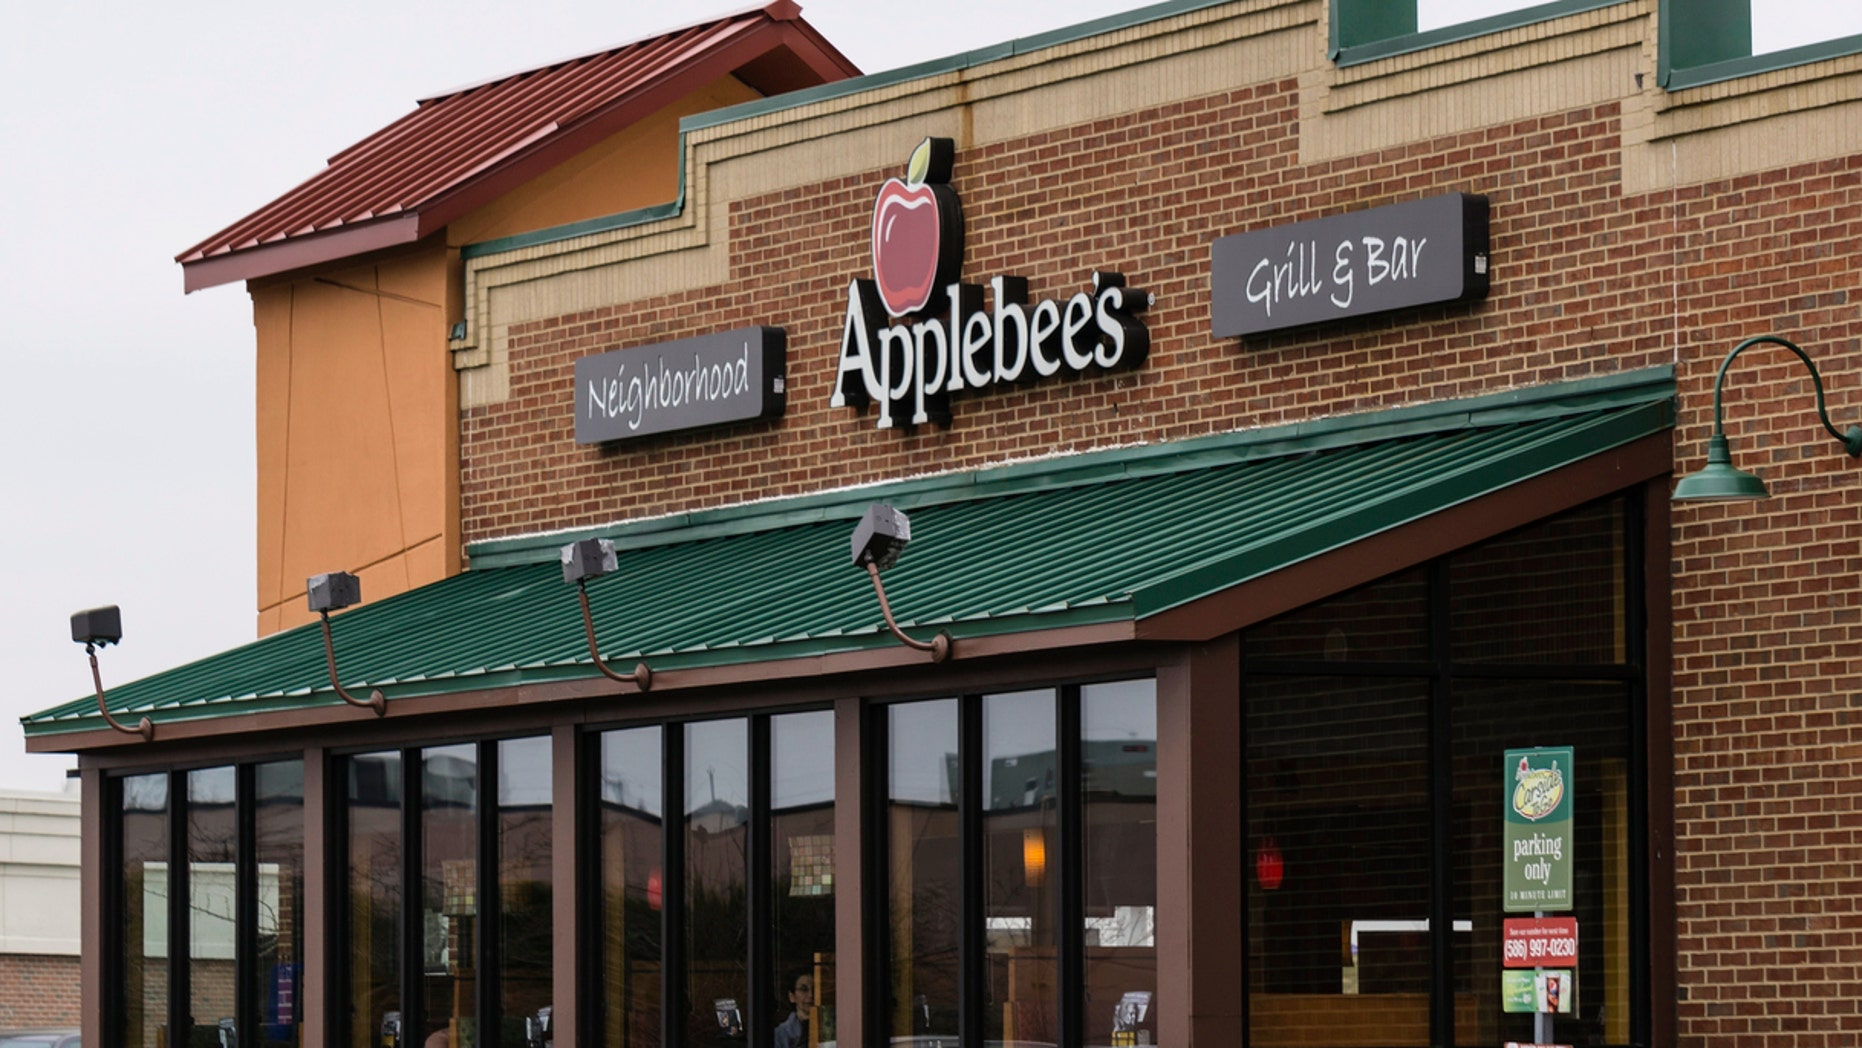 shelby township michigan usa march 23 2016 people in an applebees